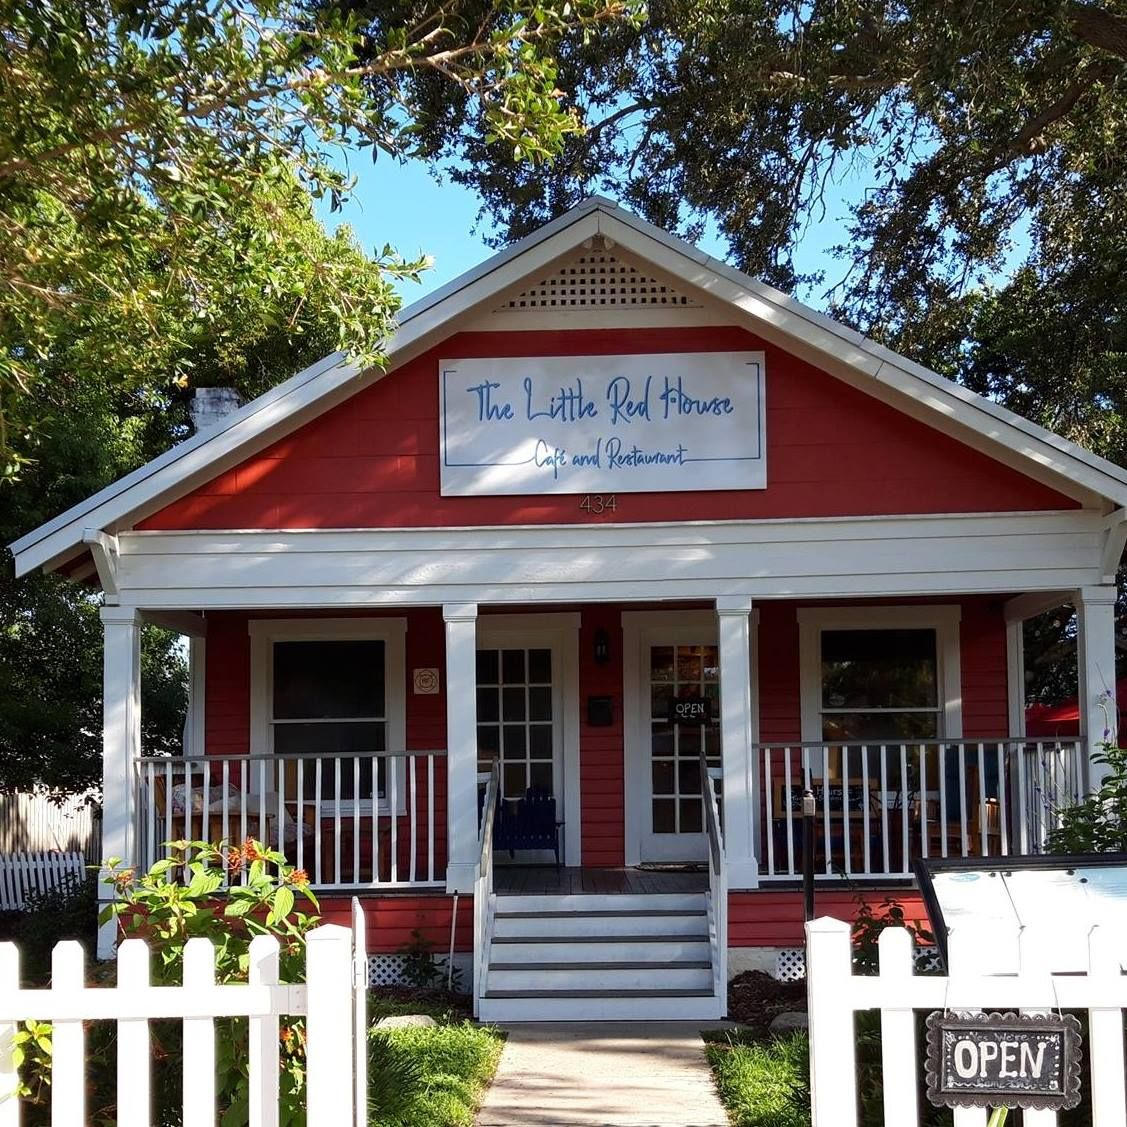 Little Red House 13090 Gandy Blvd N St Petersburg Fl 33702 727 317 5751 Yes It S As Cute As It Sounds Little Red H Red House Dunedin Florida Mansion